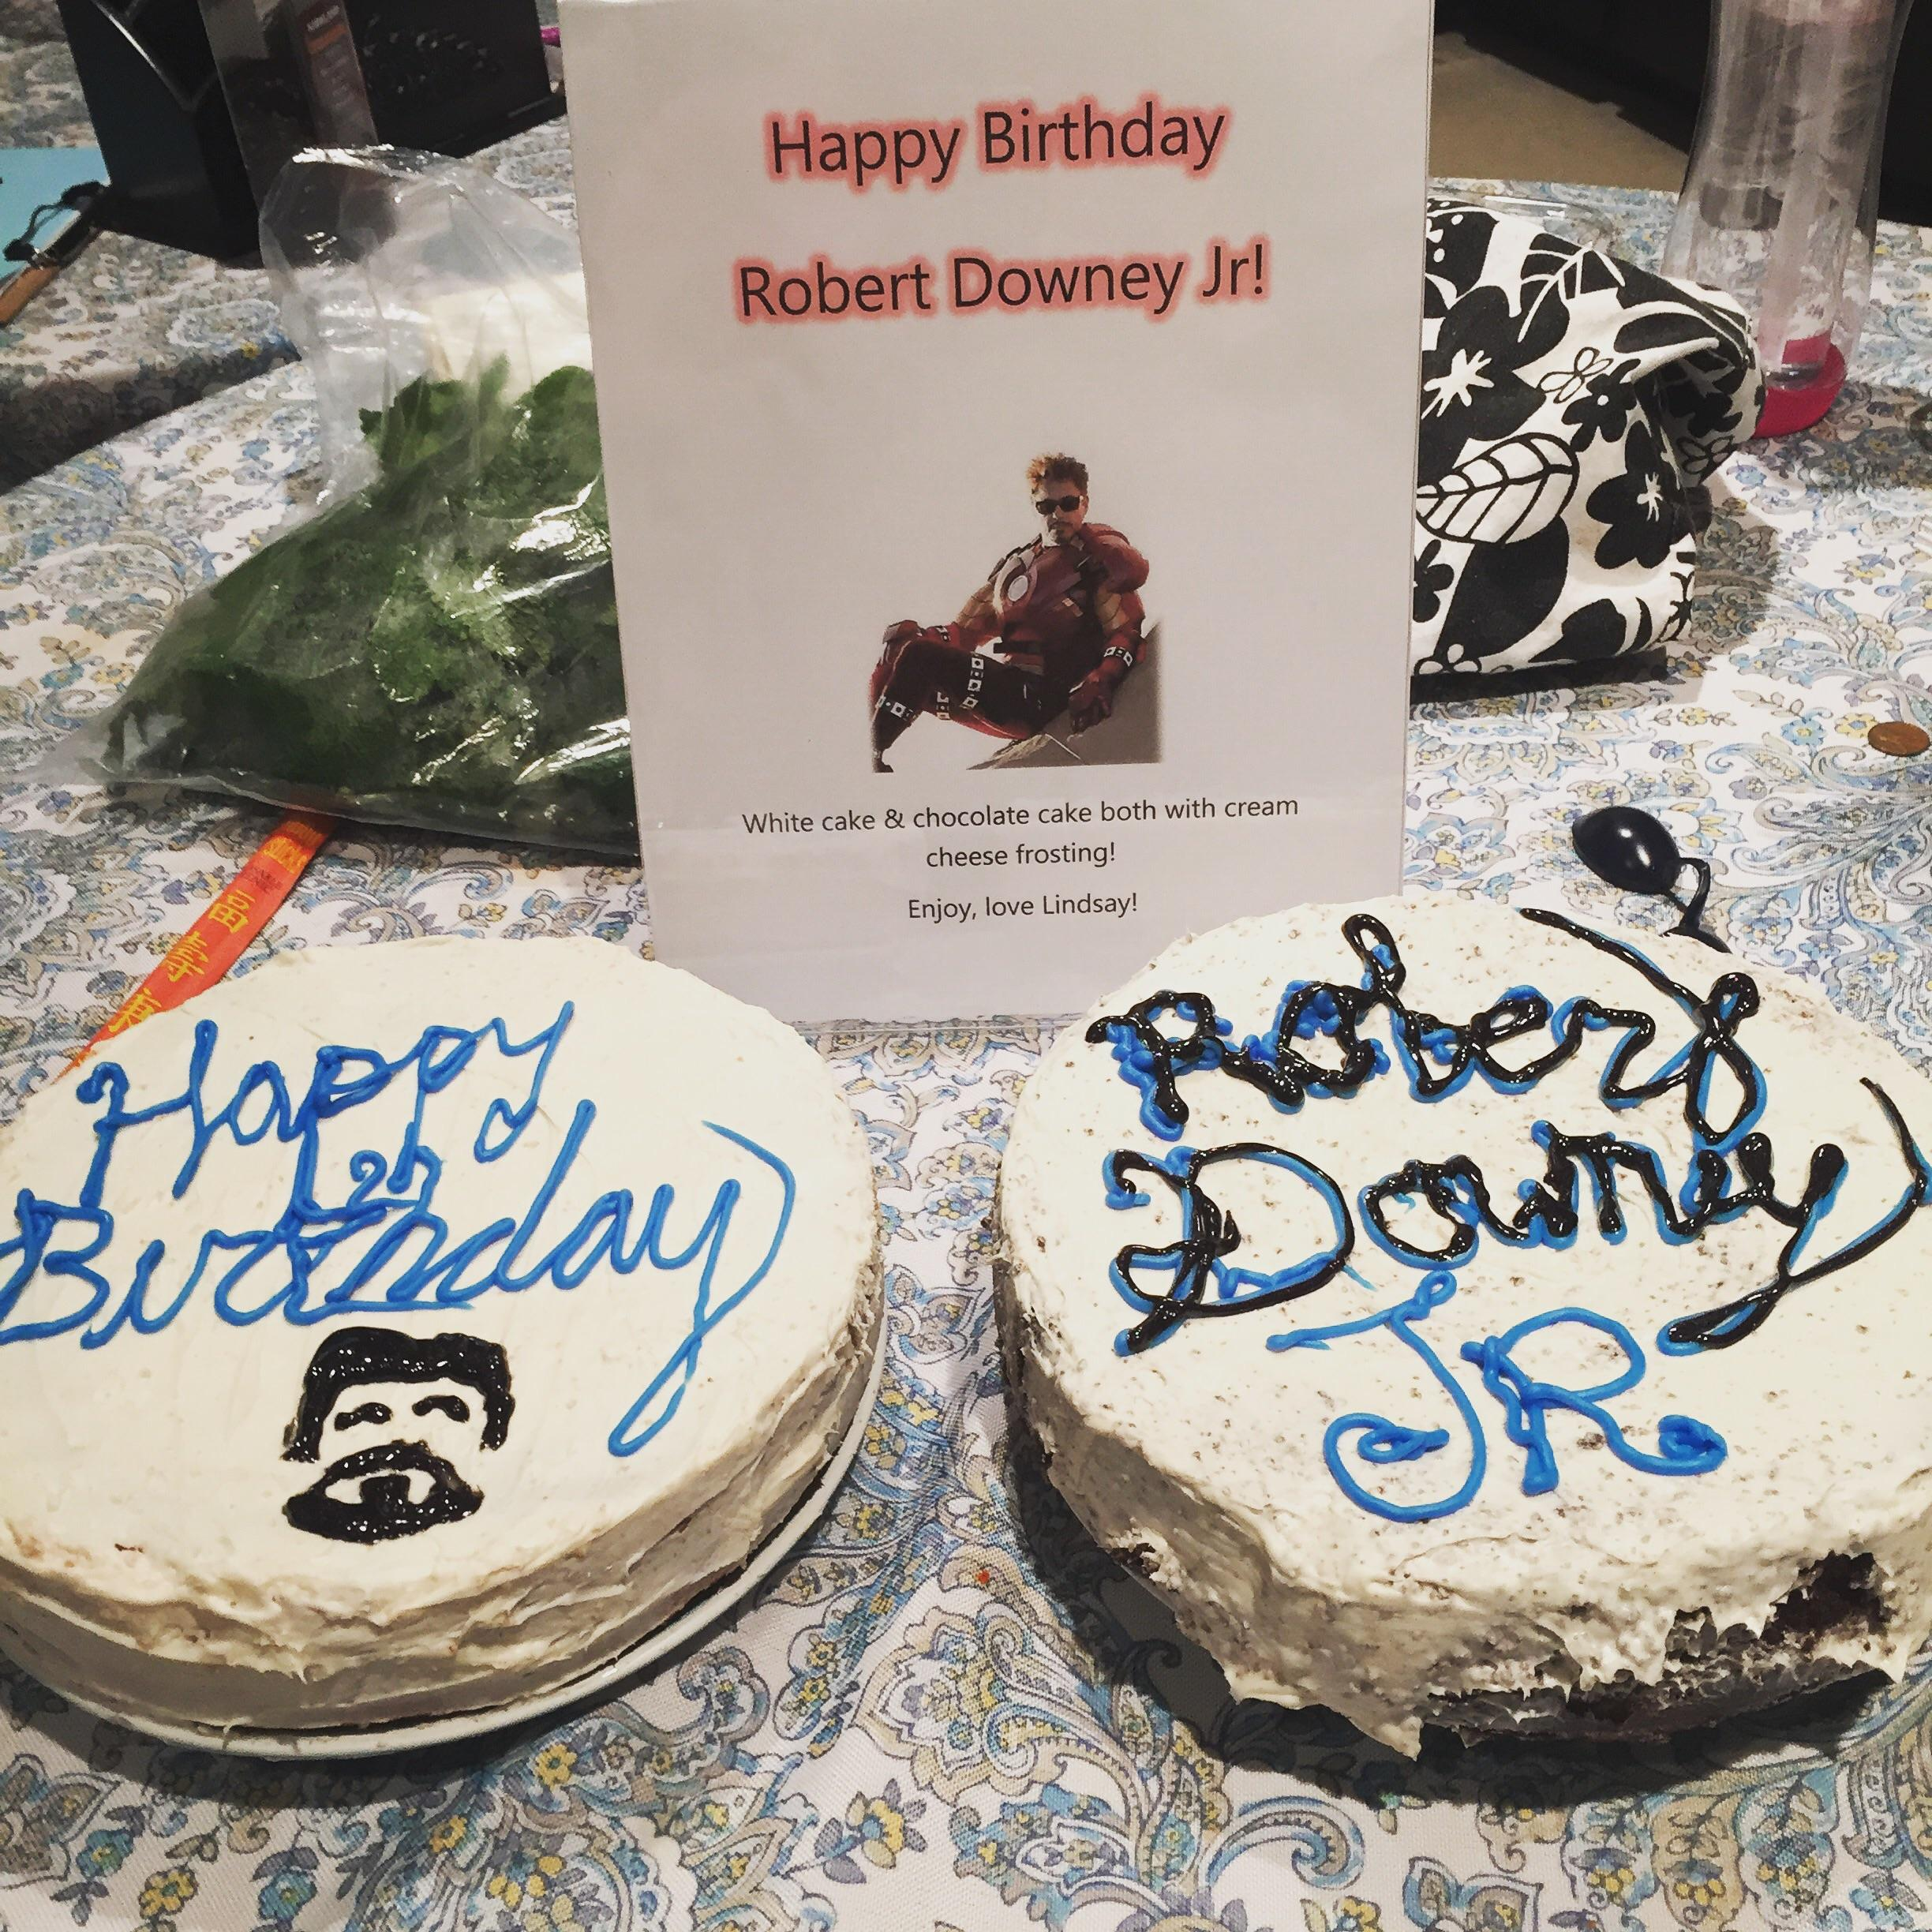 I Usually Make A Birthday Cake For Robert Every Year And Couldn T This Year So Here S One From A Few Years Ago I Made My Entire Workplace Celebrate With Me Happy Birthday